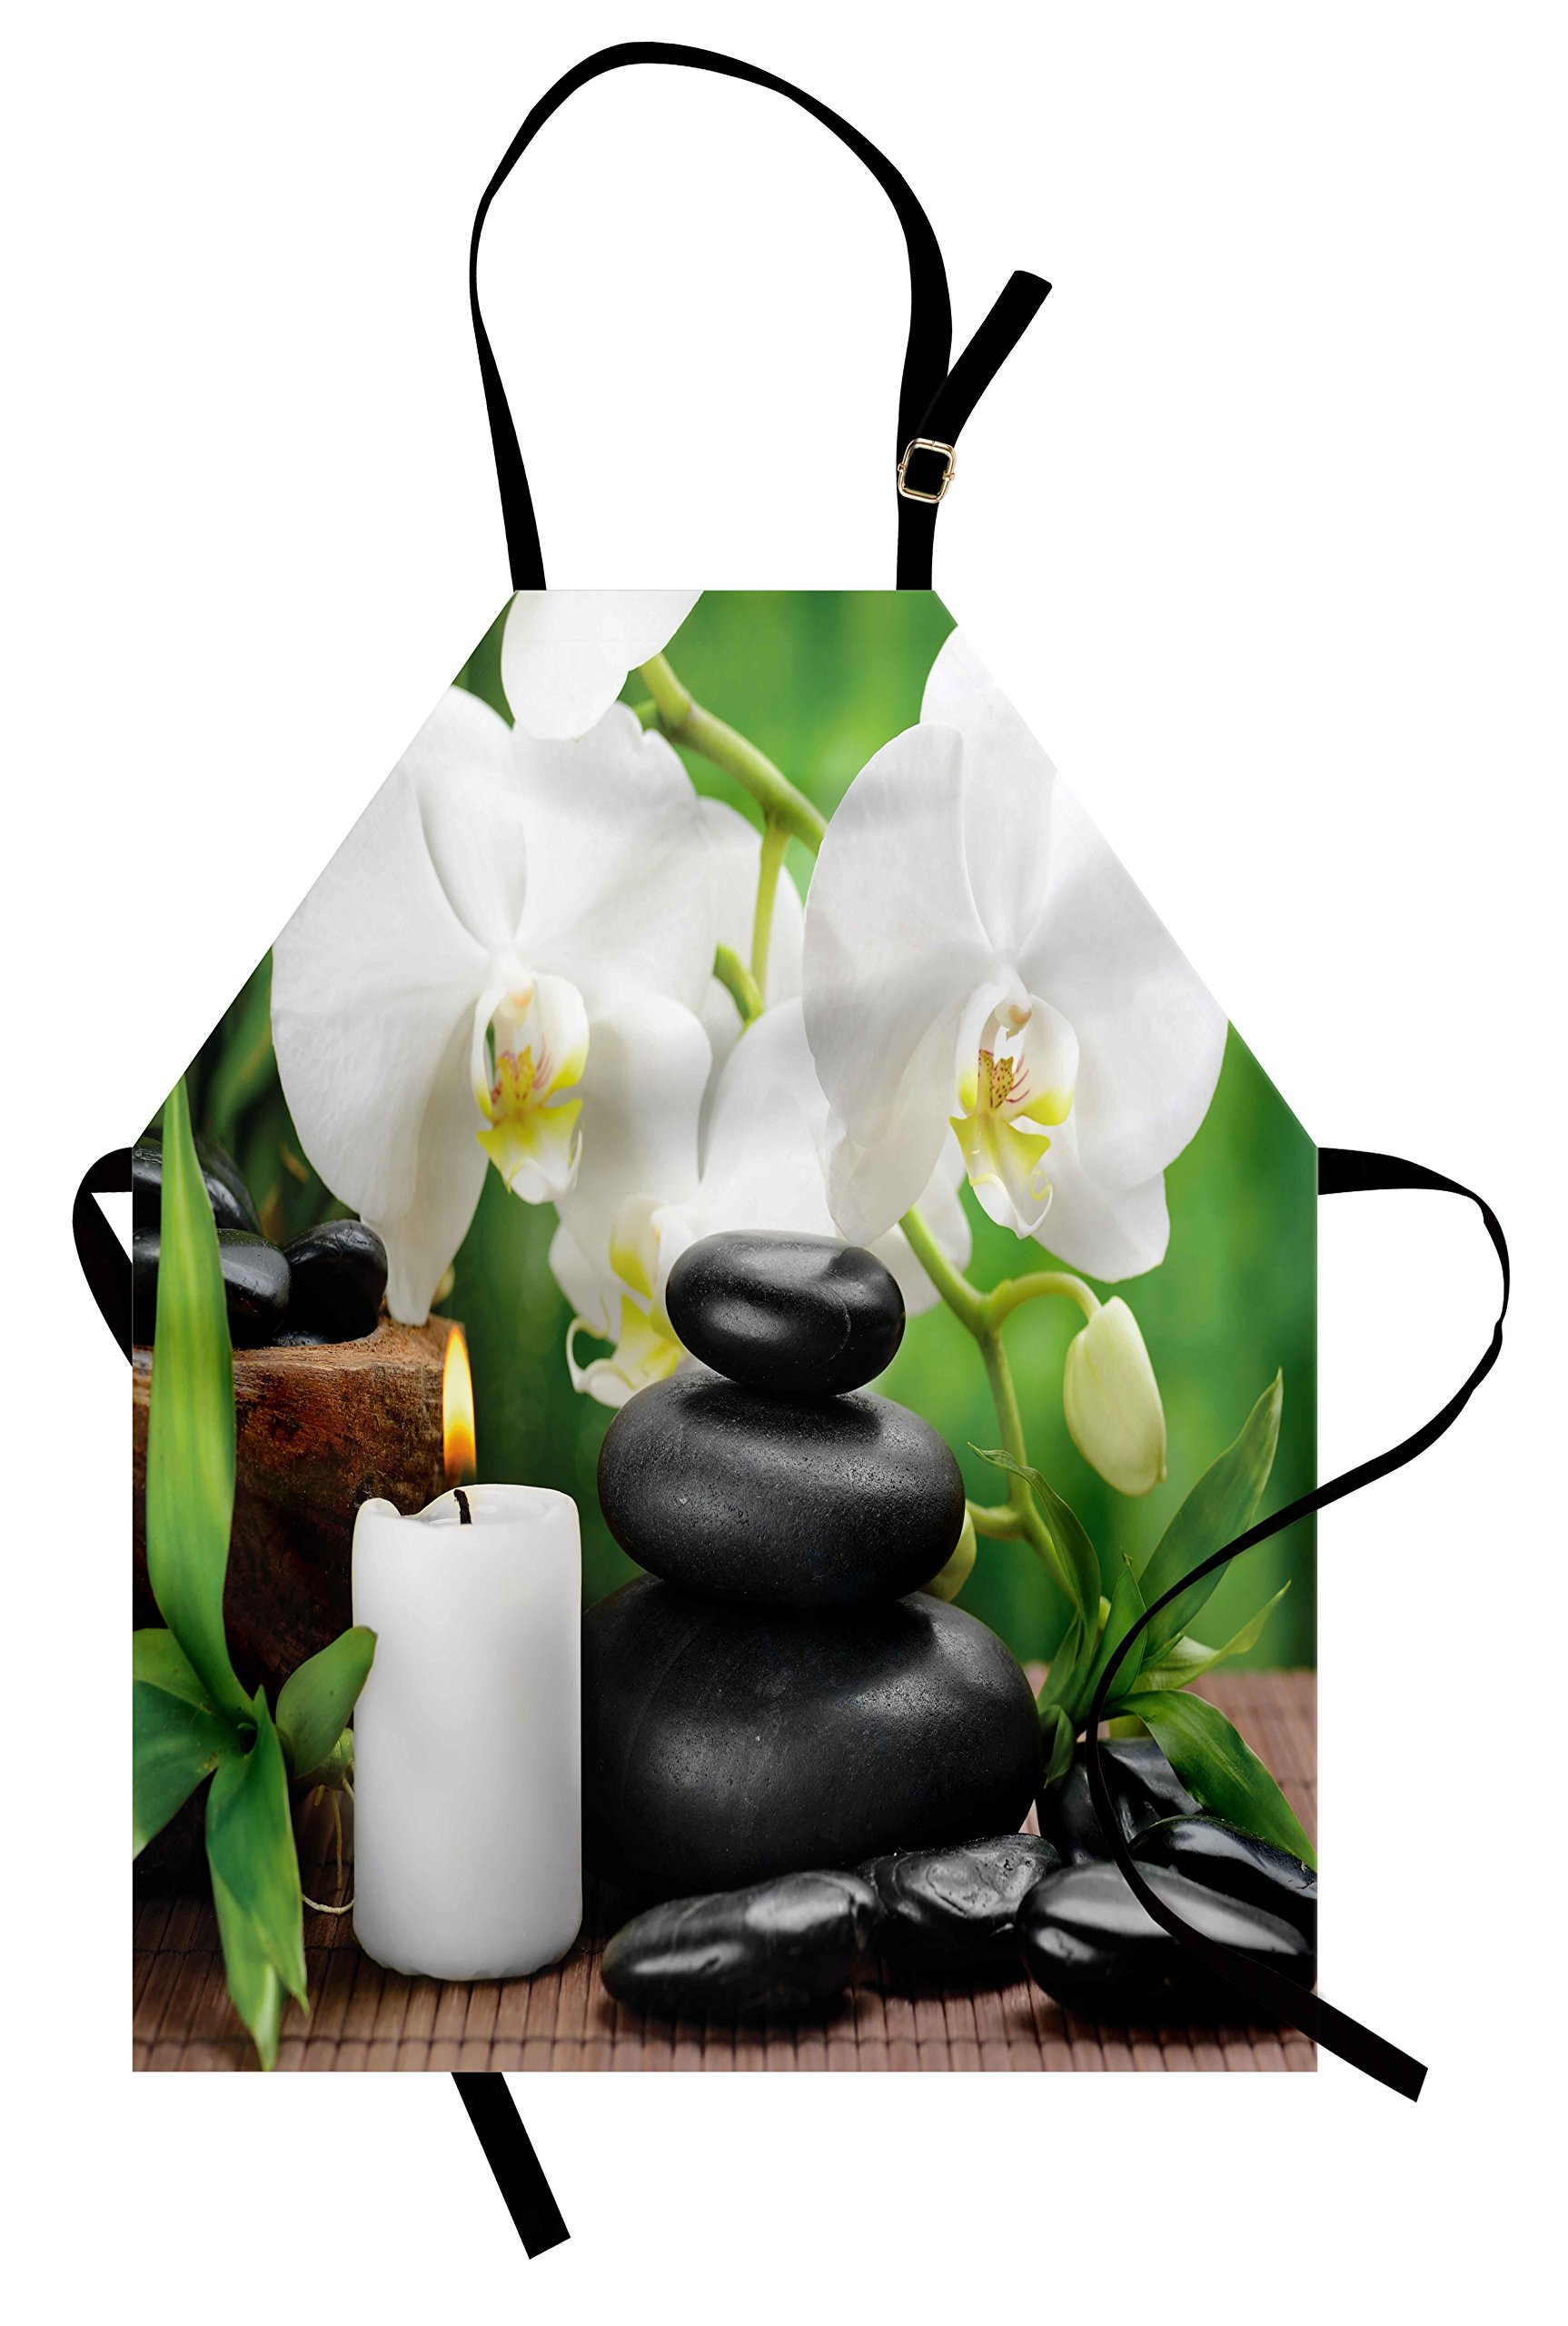 Ambesonne Spa Apron, Zen Hot Massage Stones with Orchid Candles and Magnificent Nature Remedies, Unisex Kitchen Bib Apron with Adjustable Neck for Cooking Baking Gardening, Black White and Green